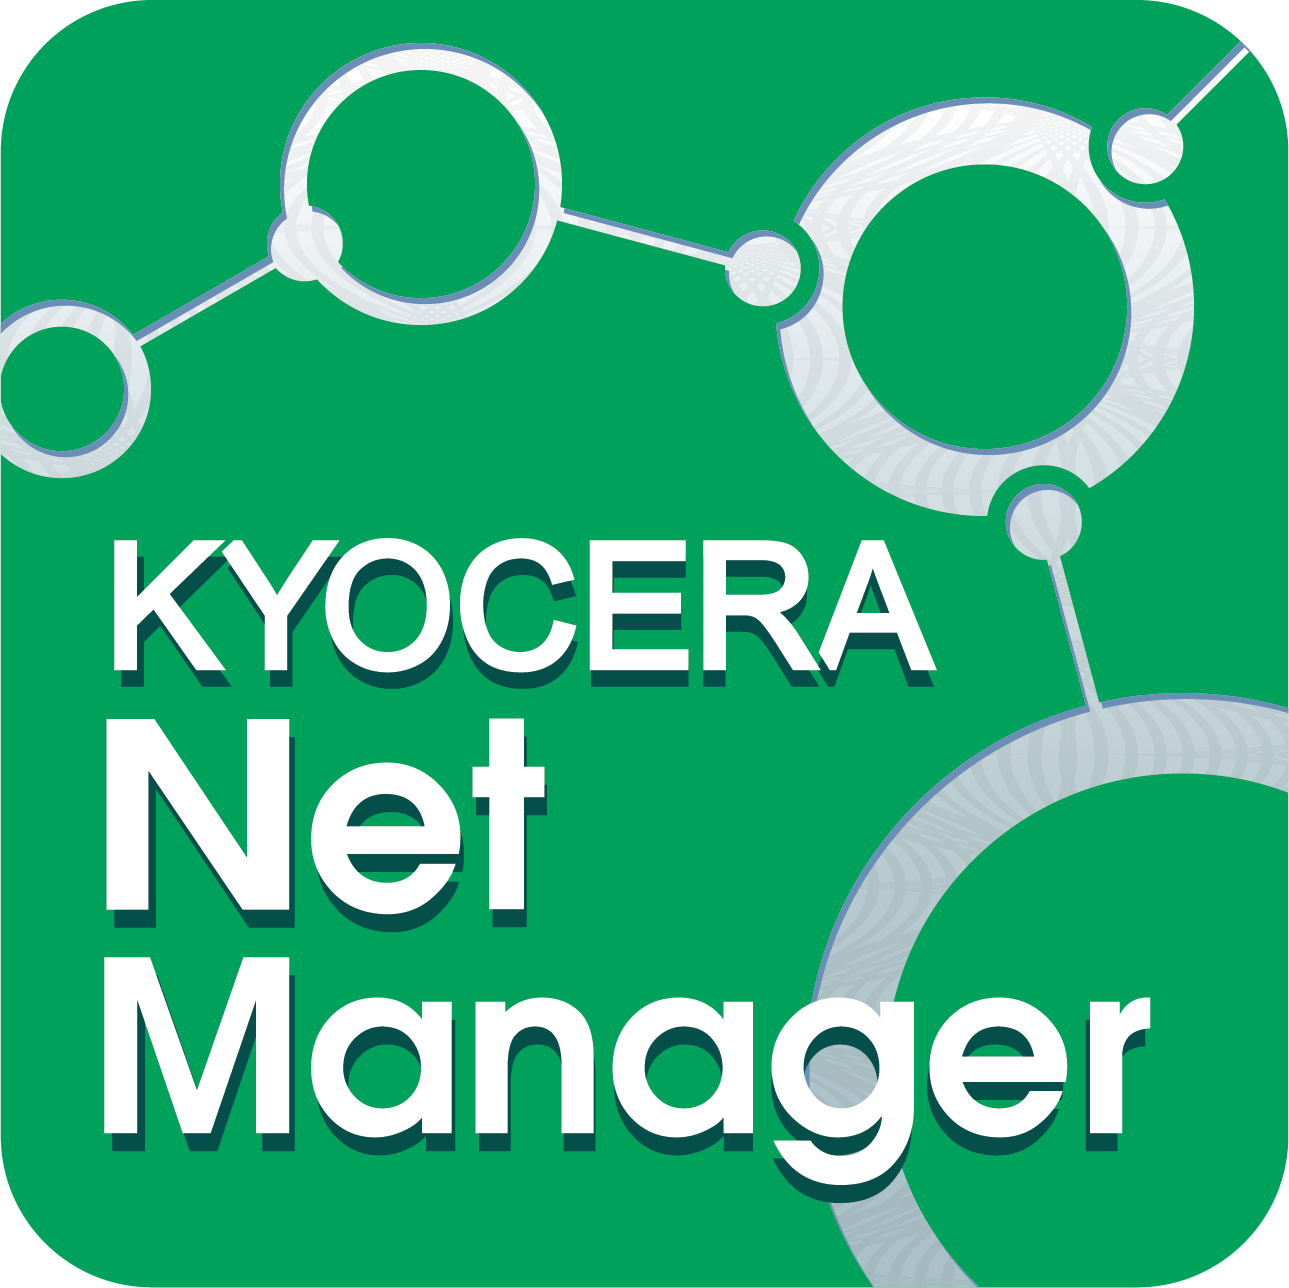 KYOCERA Net Manager